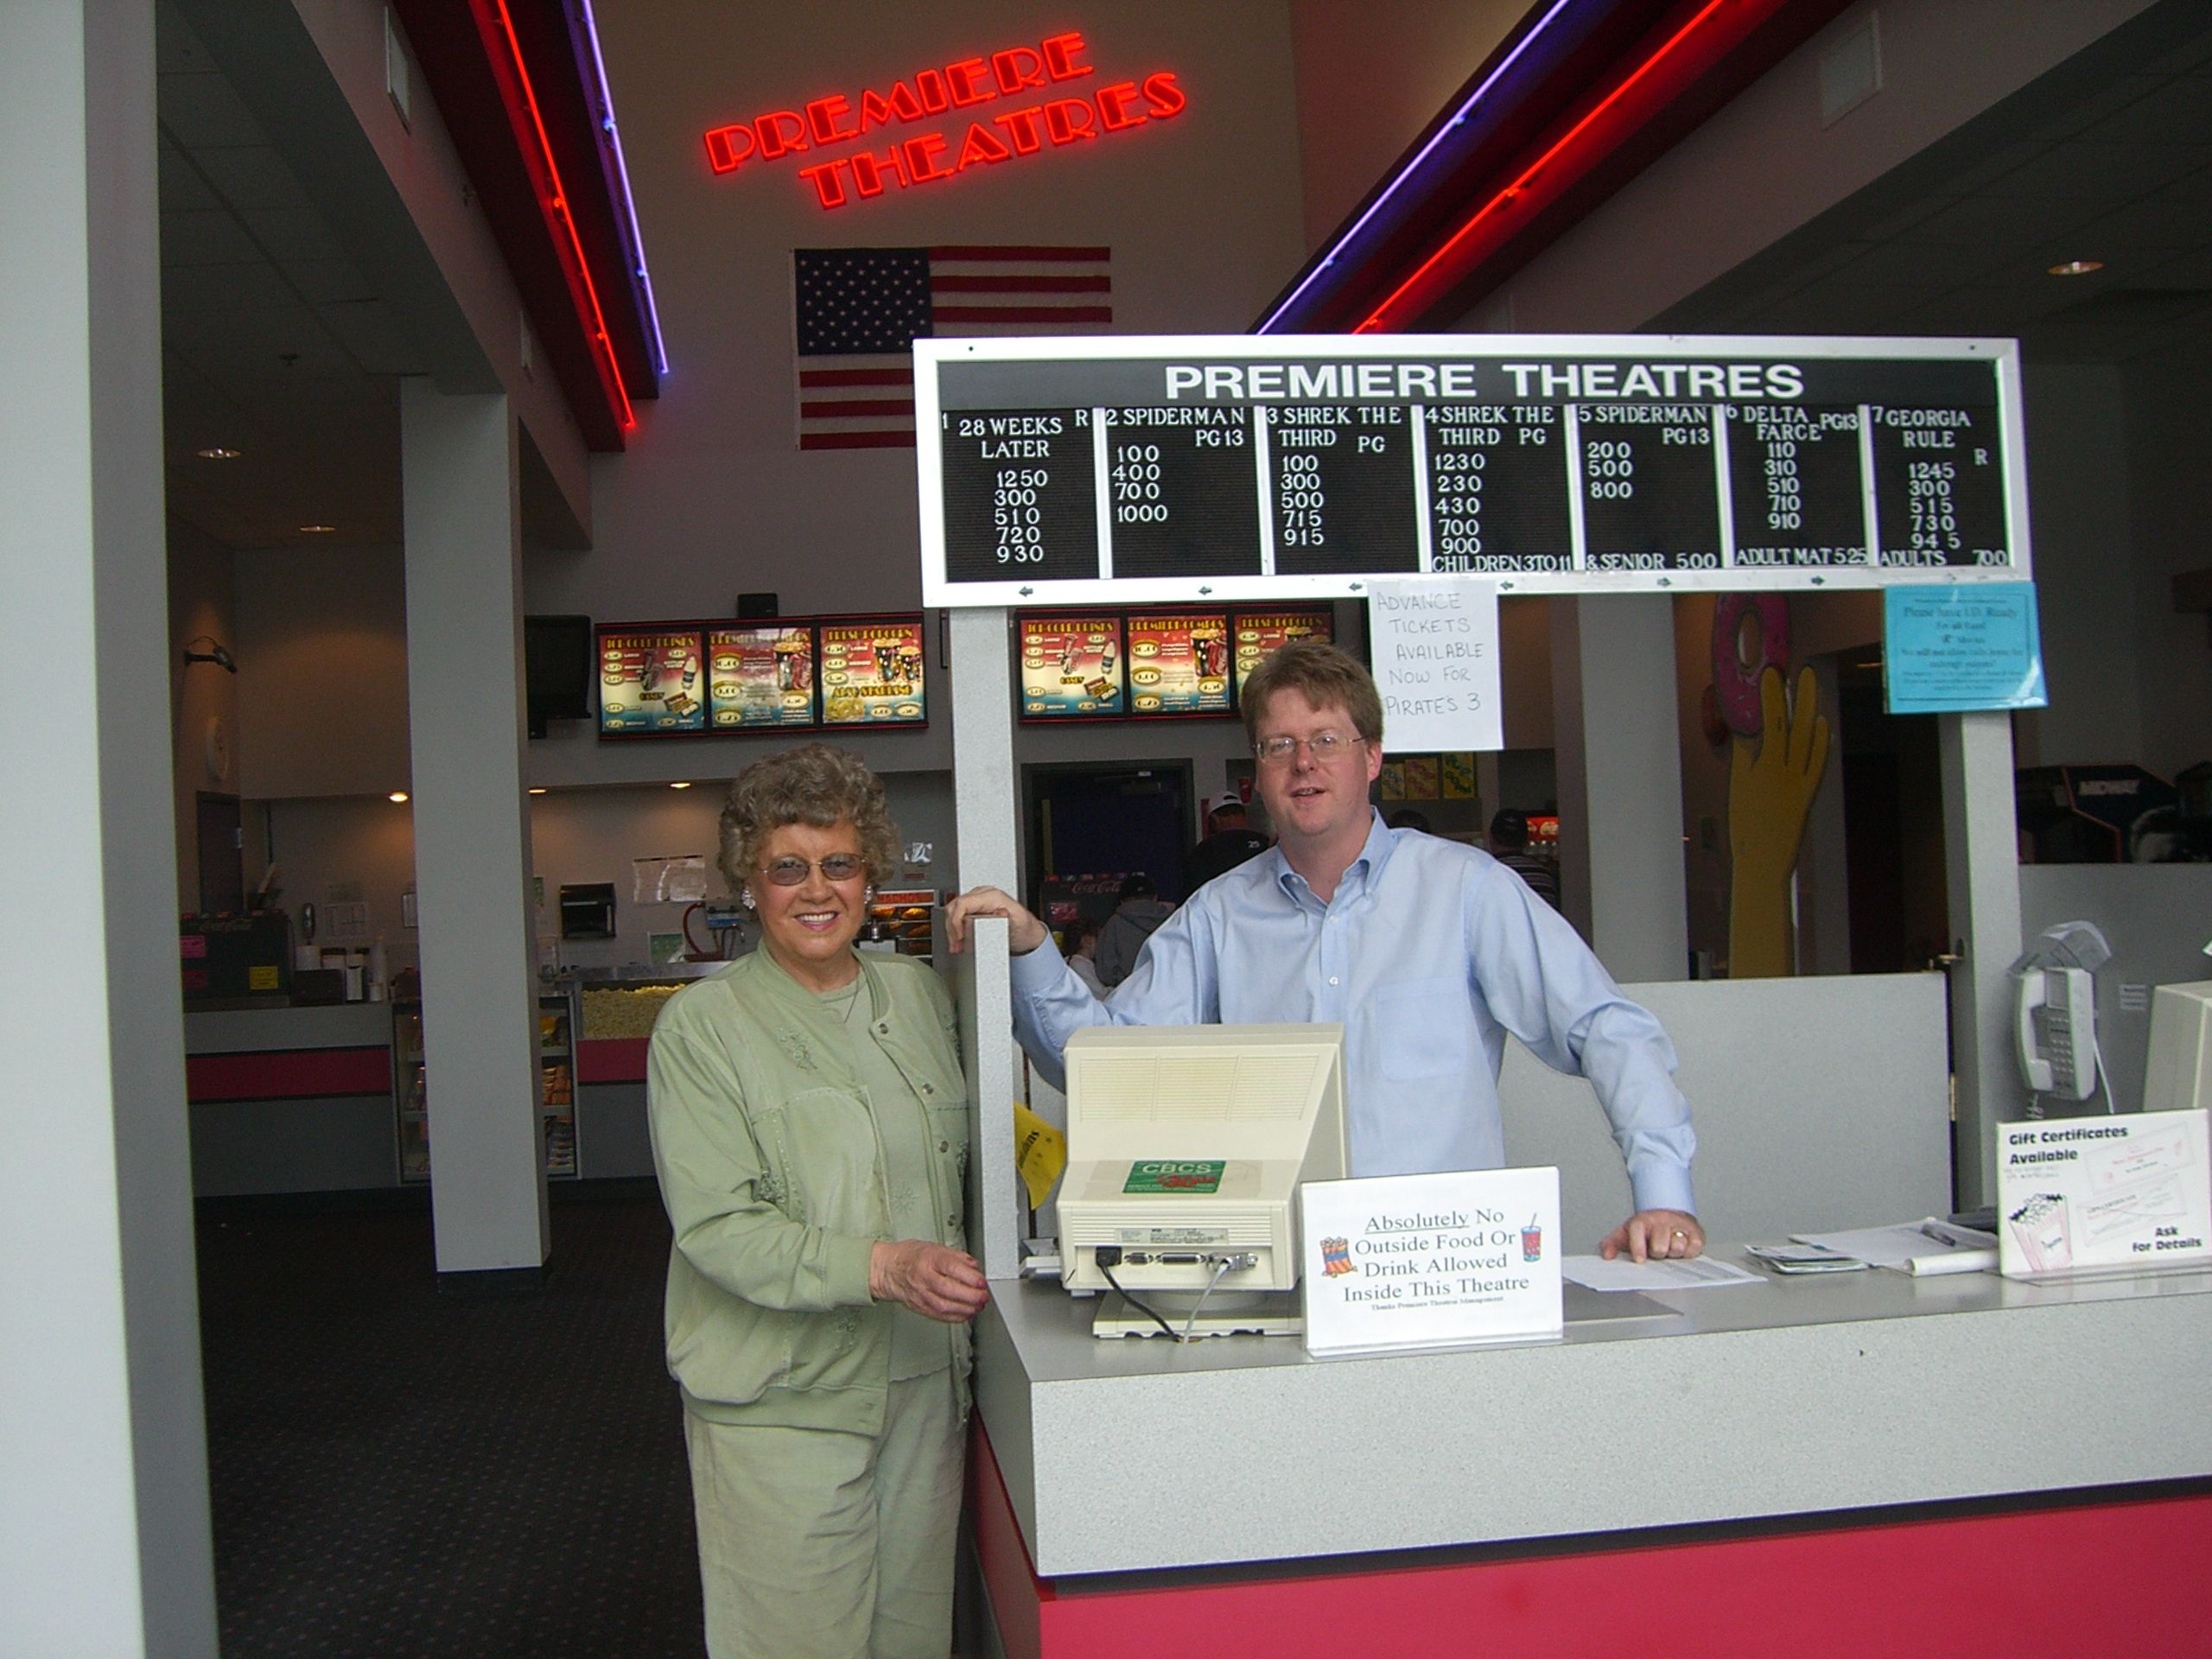 Mount Vernon Ohio Movie Theatre Photo featuring Sam Miller and Joan Clipse